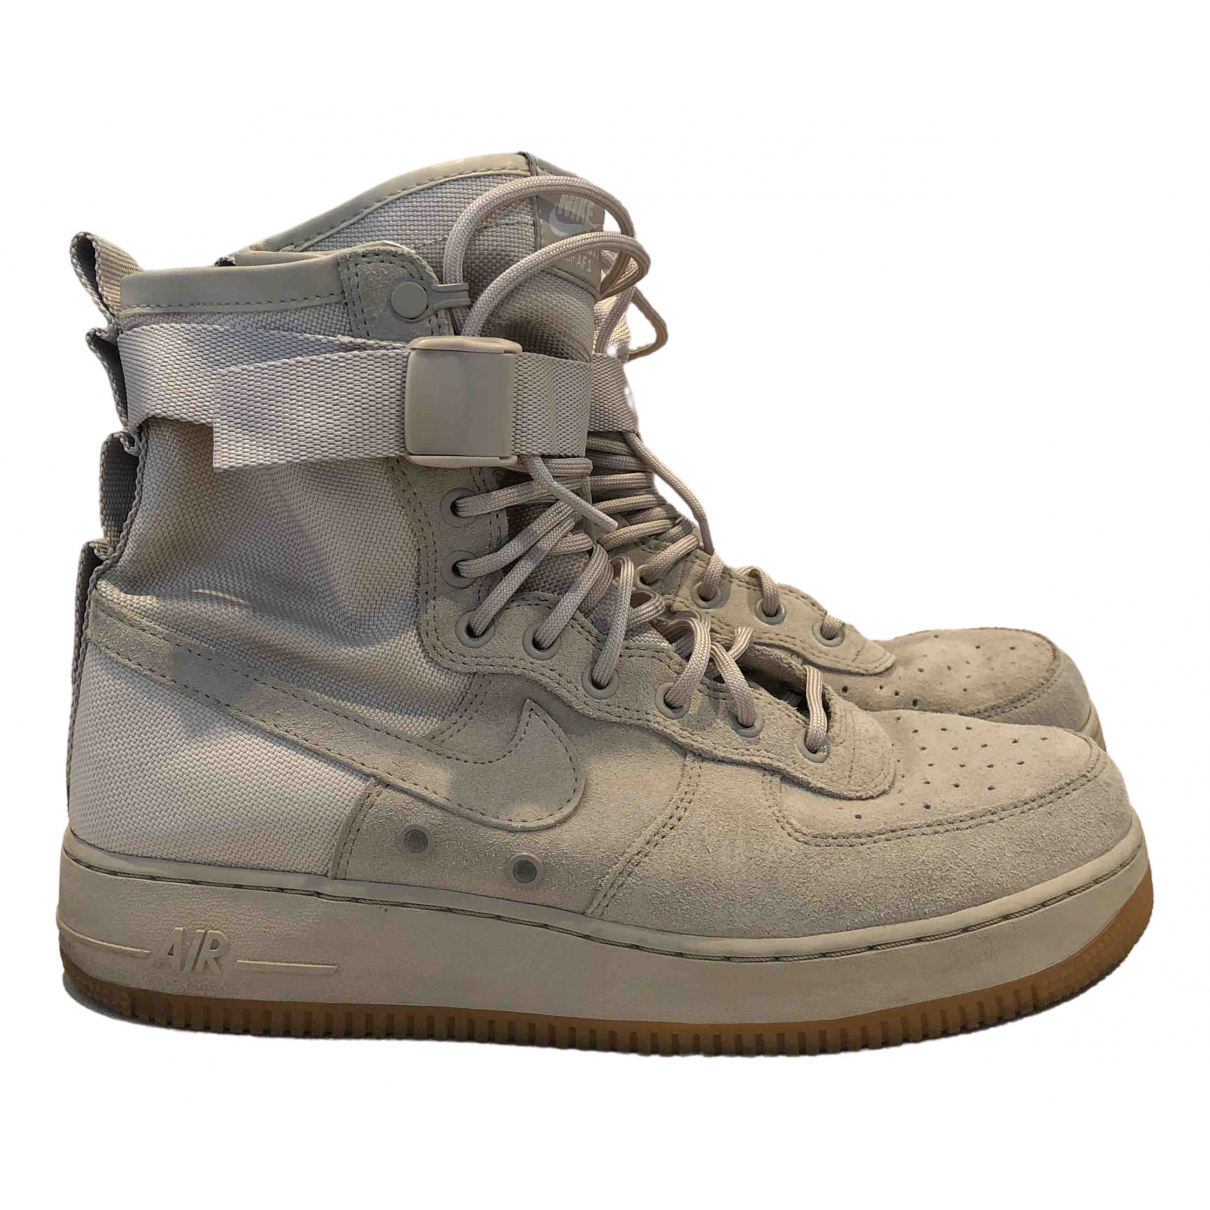 Nike - Baskets SF Air Force 1 pour homme en suede - kaki